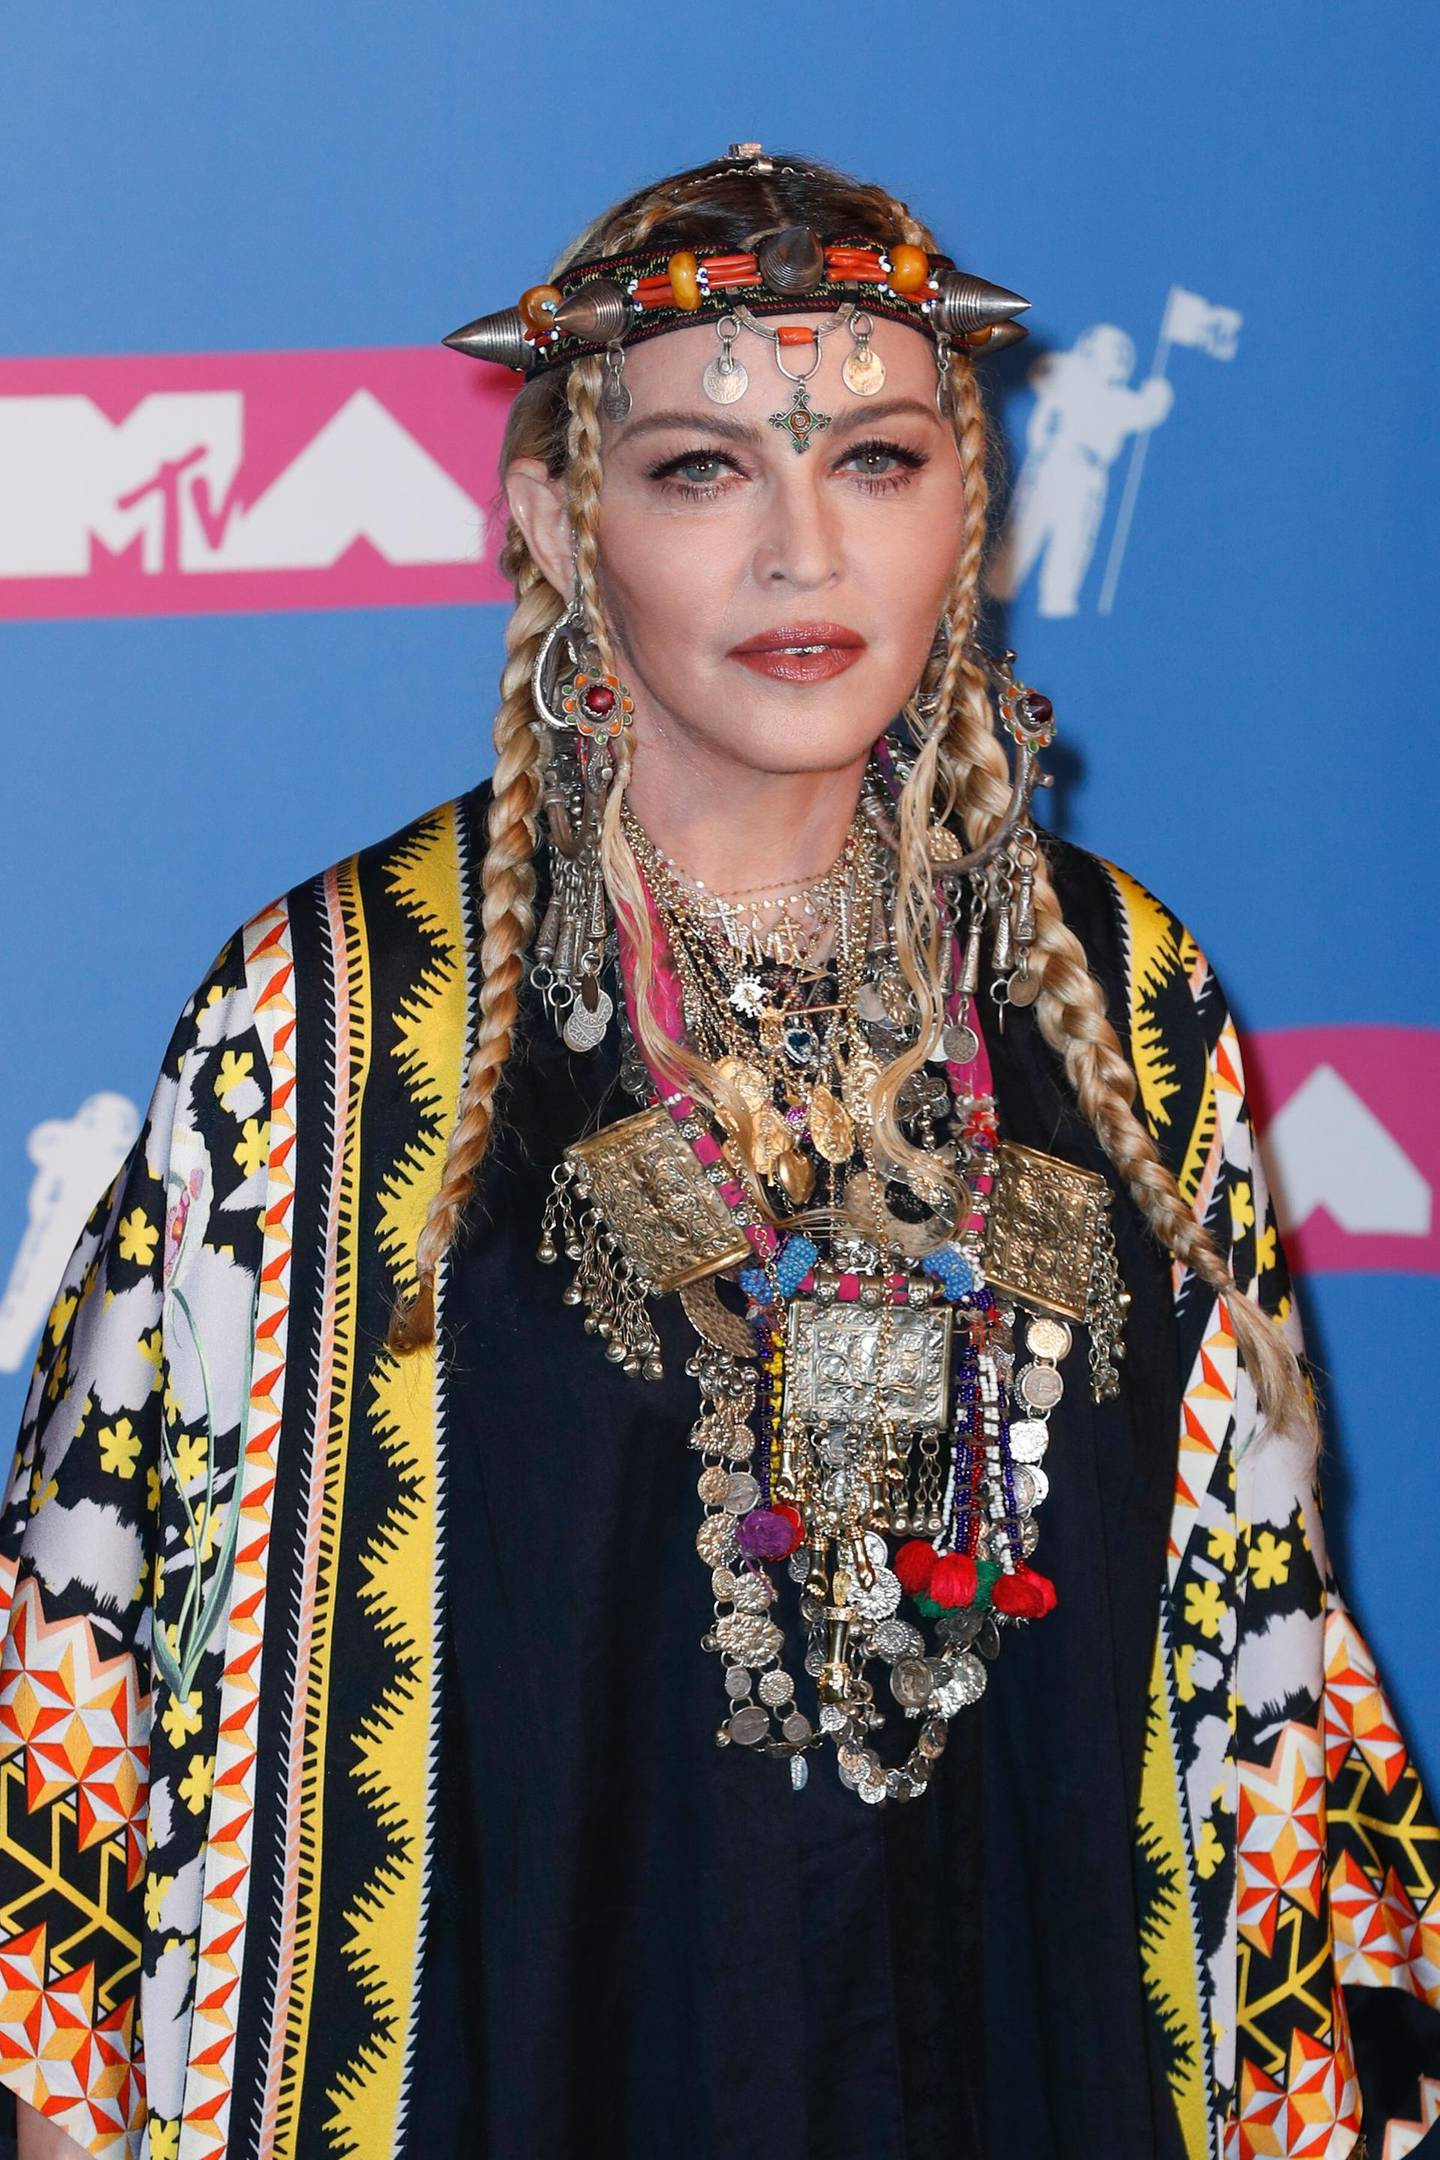 epa06961509 US singer-songwriter Madonna poses in the press room at the 2018 MTV Video Music Awards at Radio City Music Hall in New York, New York, USA, 20 August 2018.  EPA/JASON SZENES